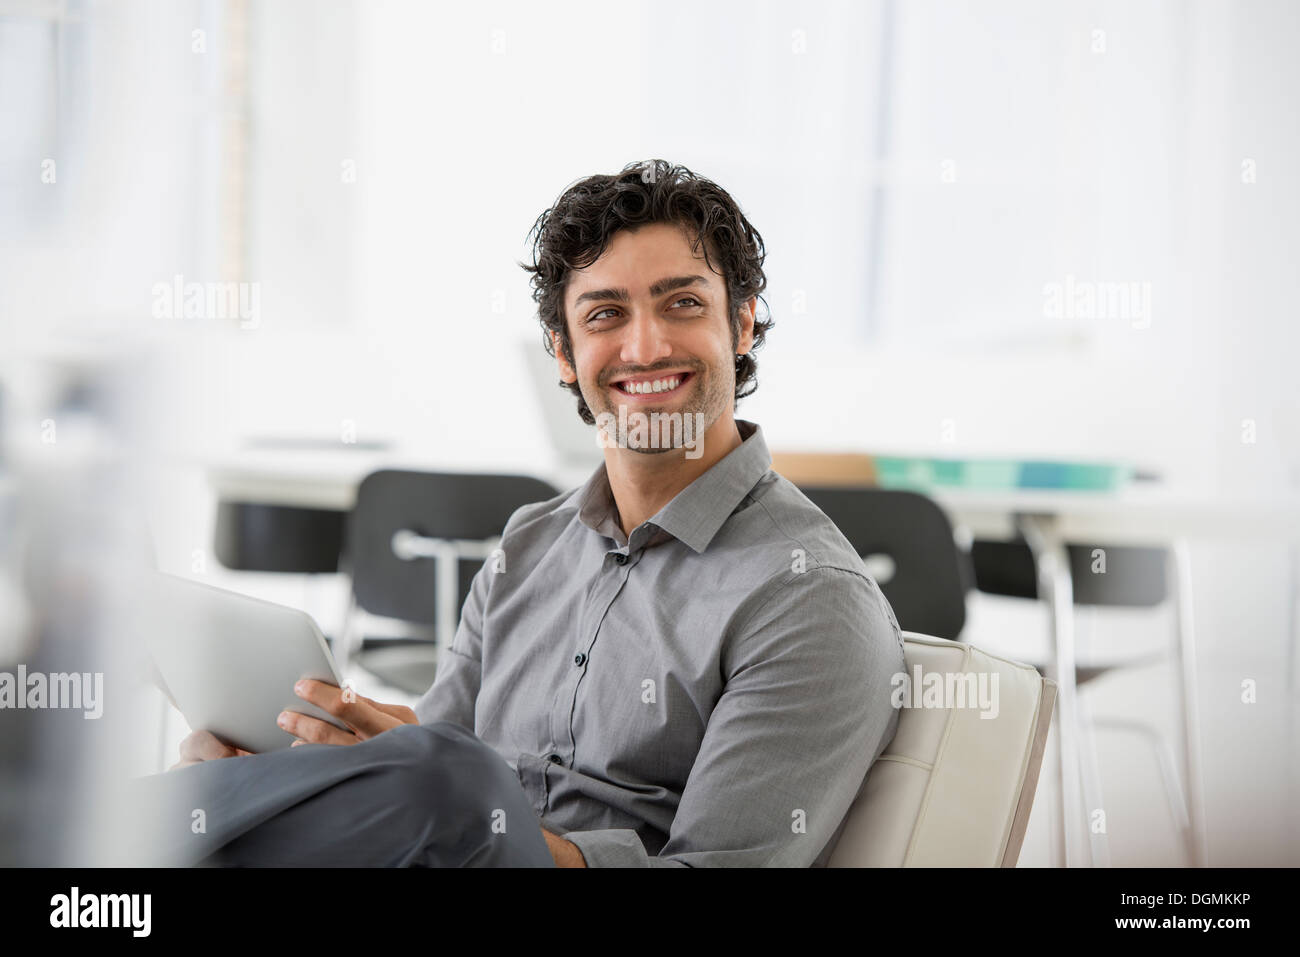 Business. A man seated smiling and holding a digital tablet. - Stock Image